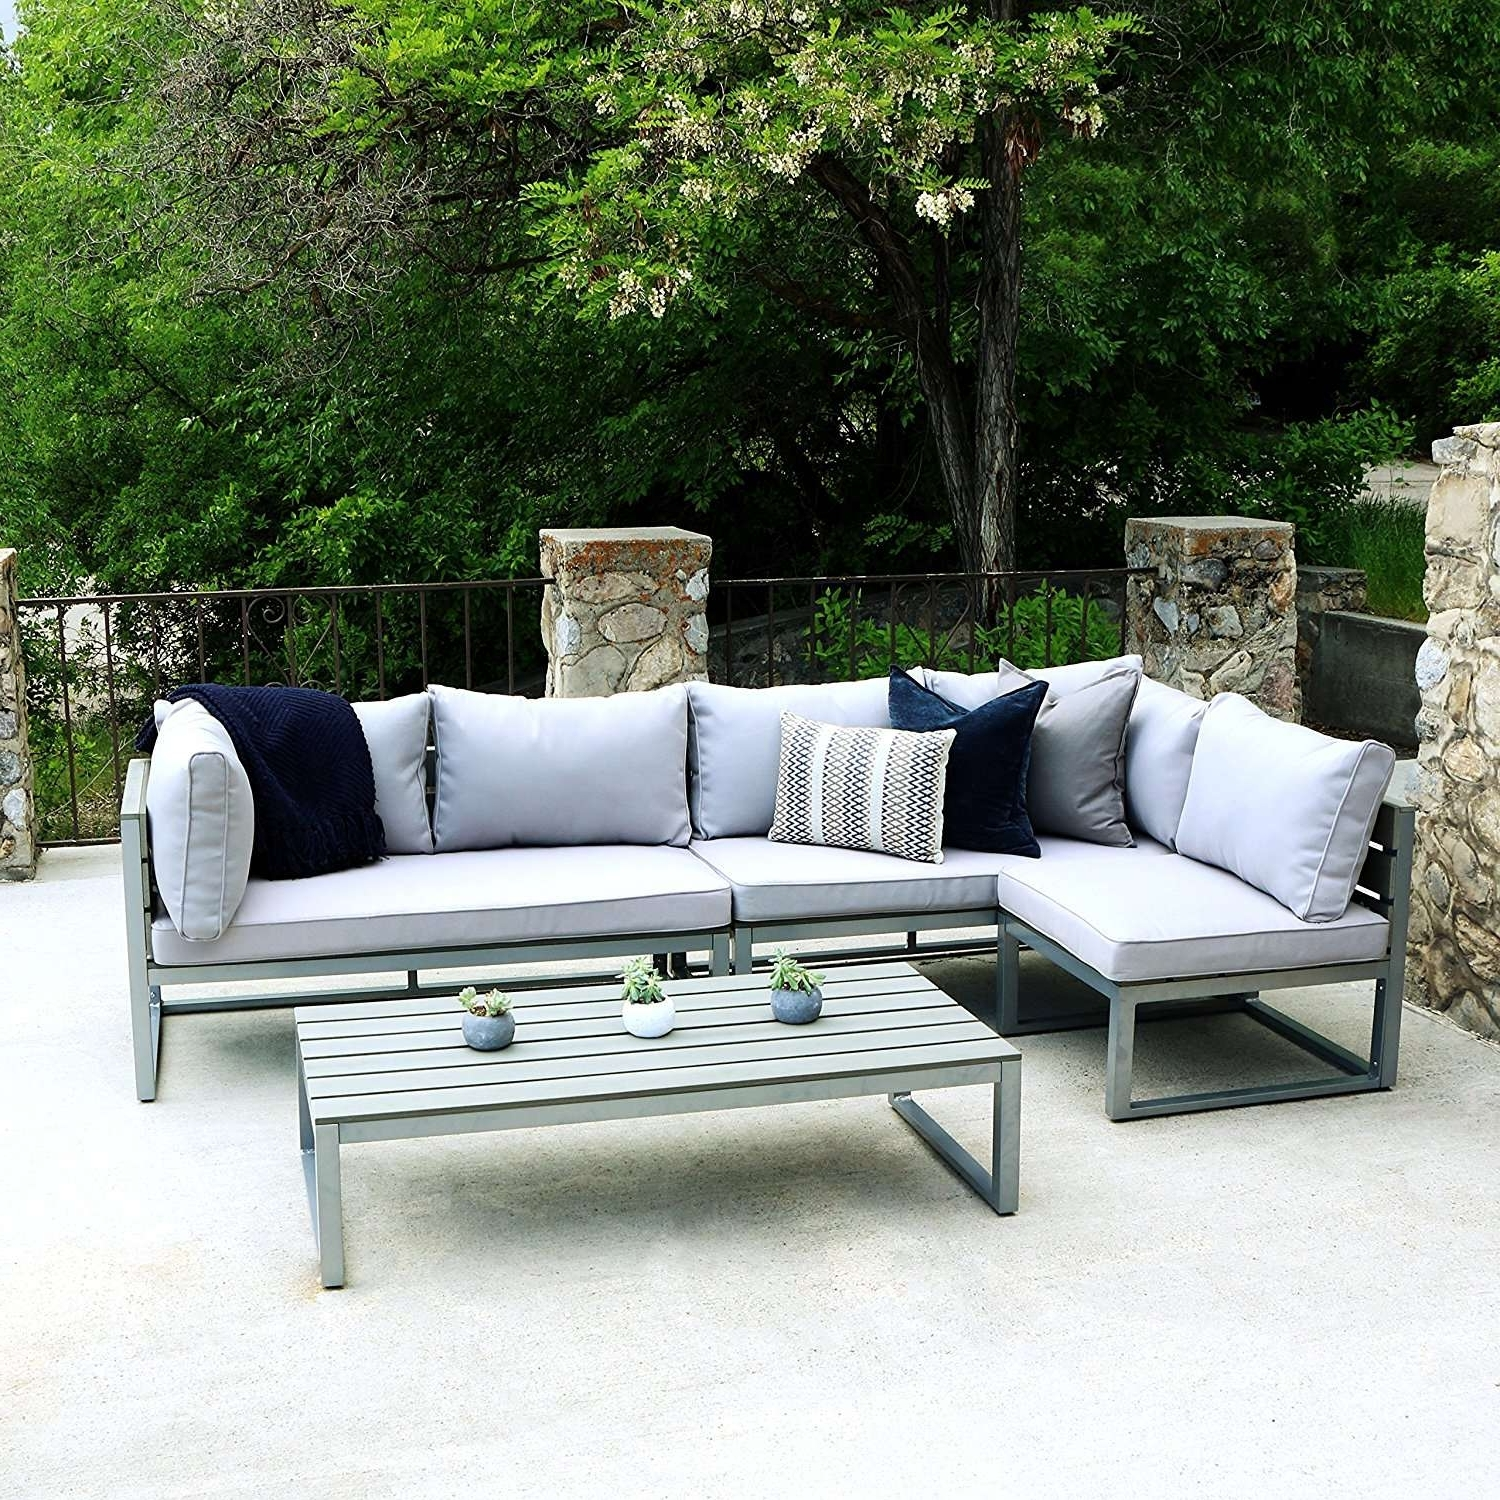 Round Patio Conversation Sets Throughout Favorite Conversation Sets Outdoor Sectional Seating Round Patio Concept Of (View 6 of 15)